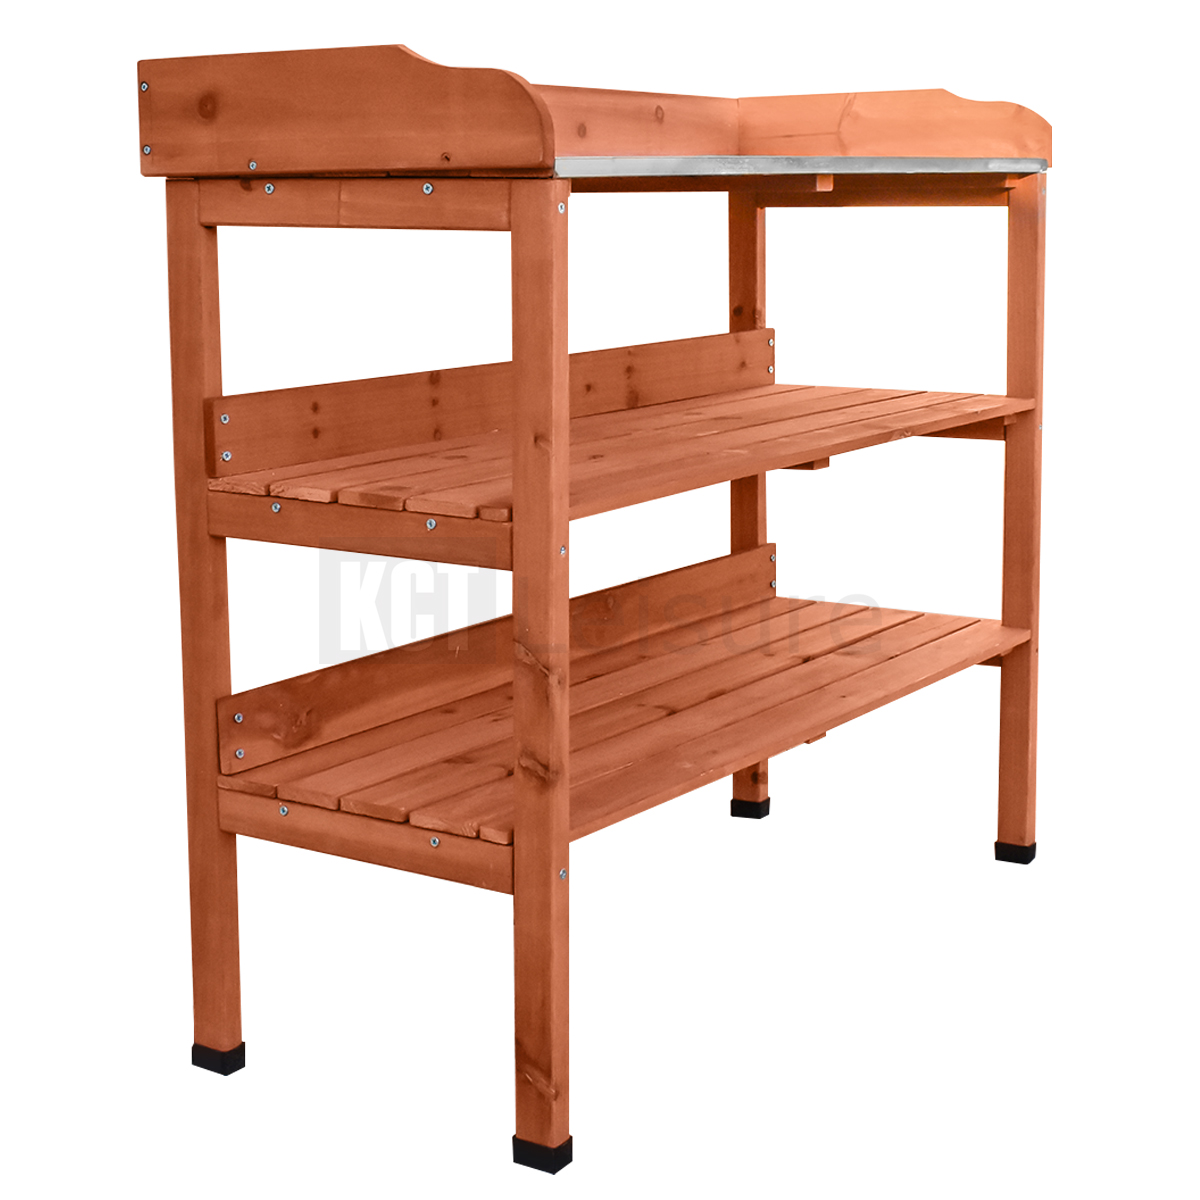 prepare table shelves garden bench itm with storage plant kct potting soil wooden tier